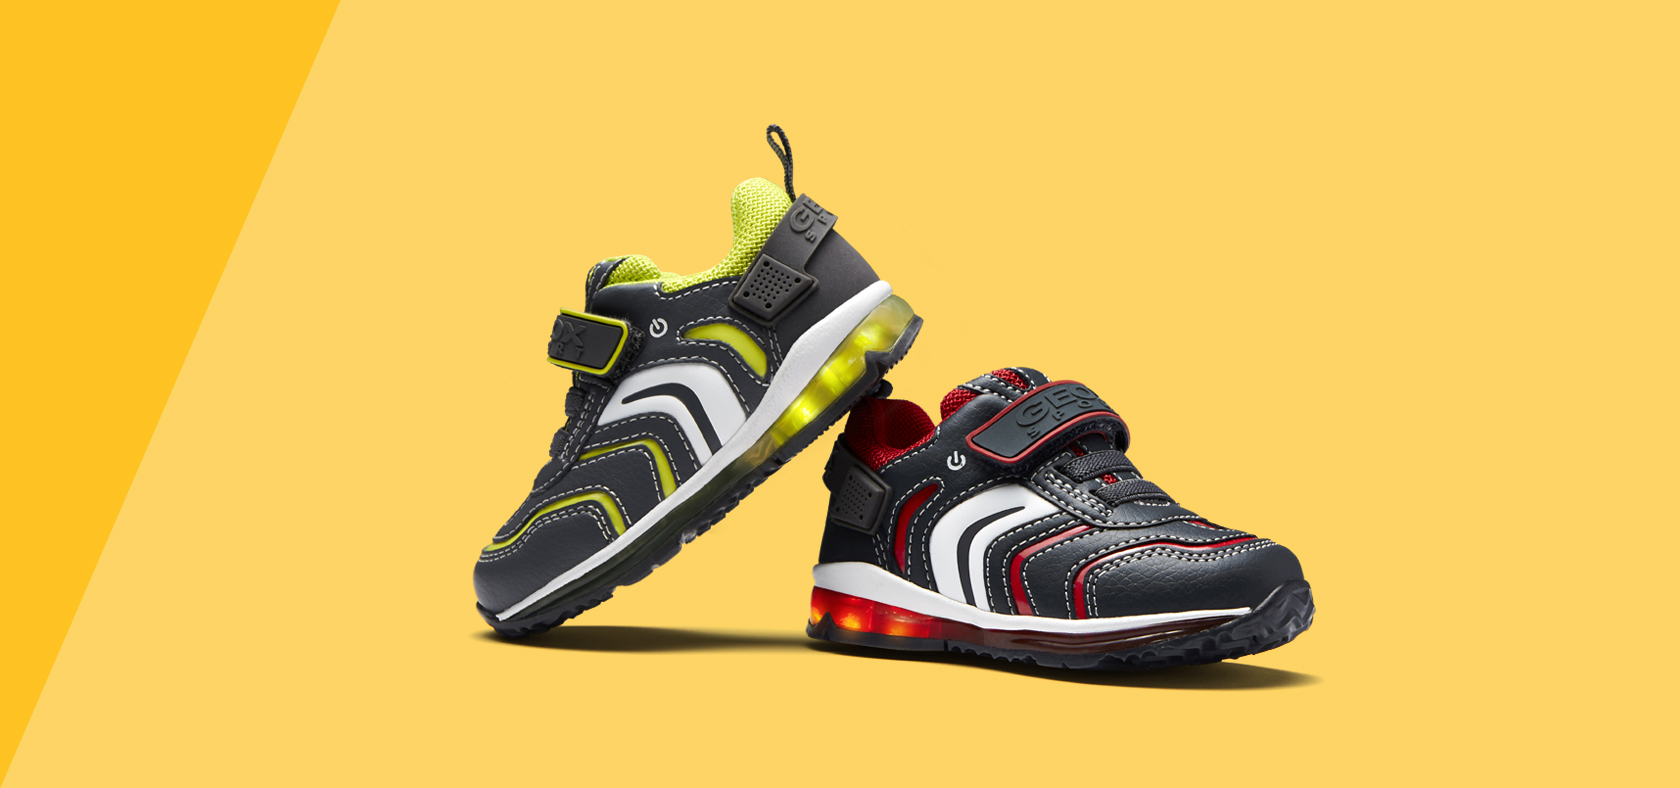 Led Shoes and Sneakers for Babies and Little Children | Geox